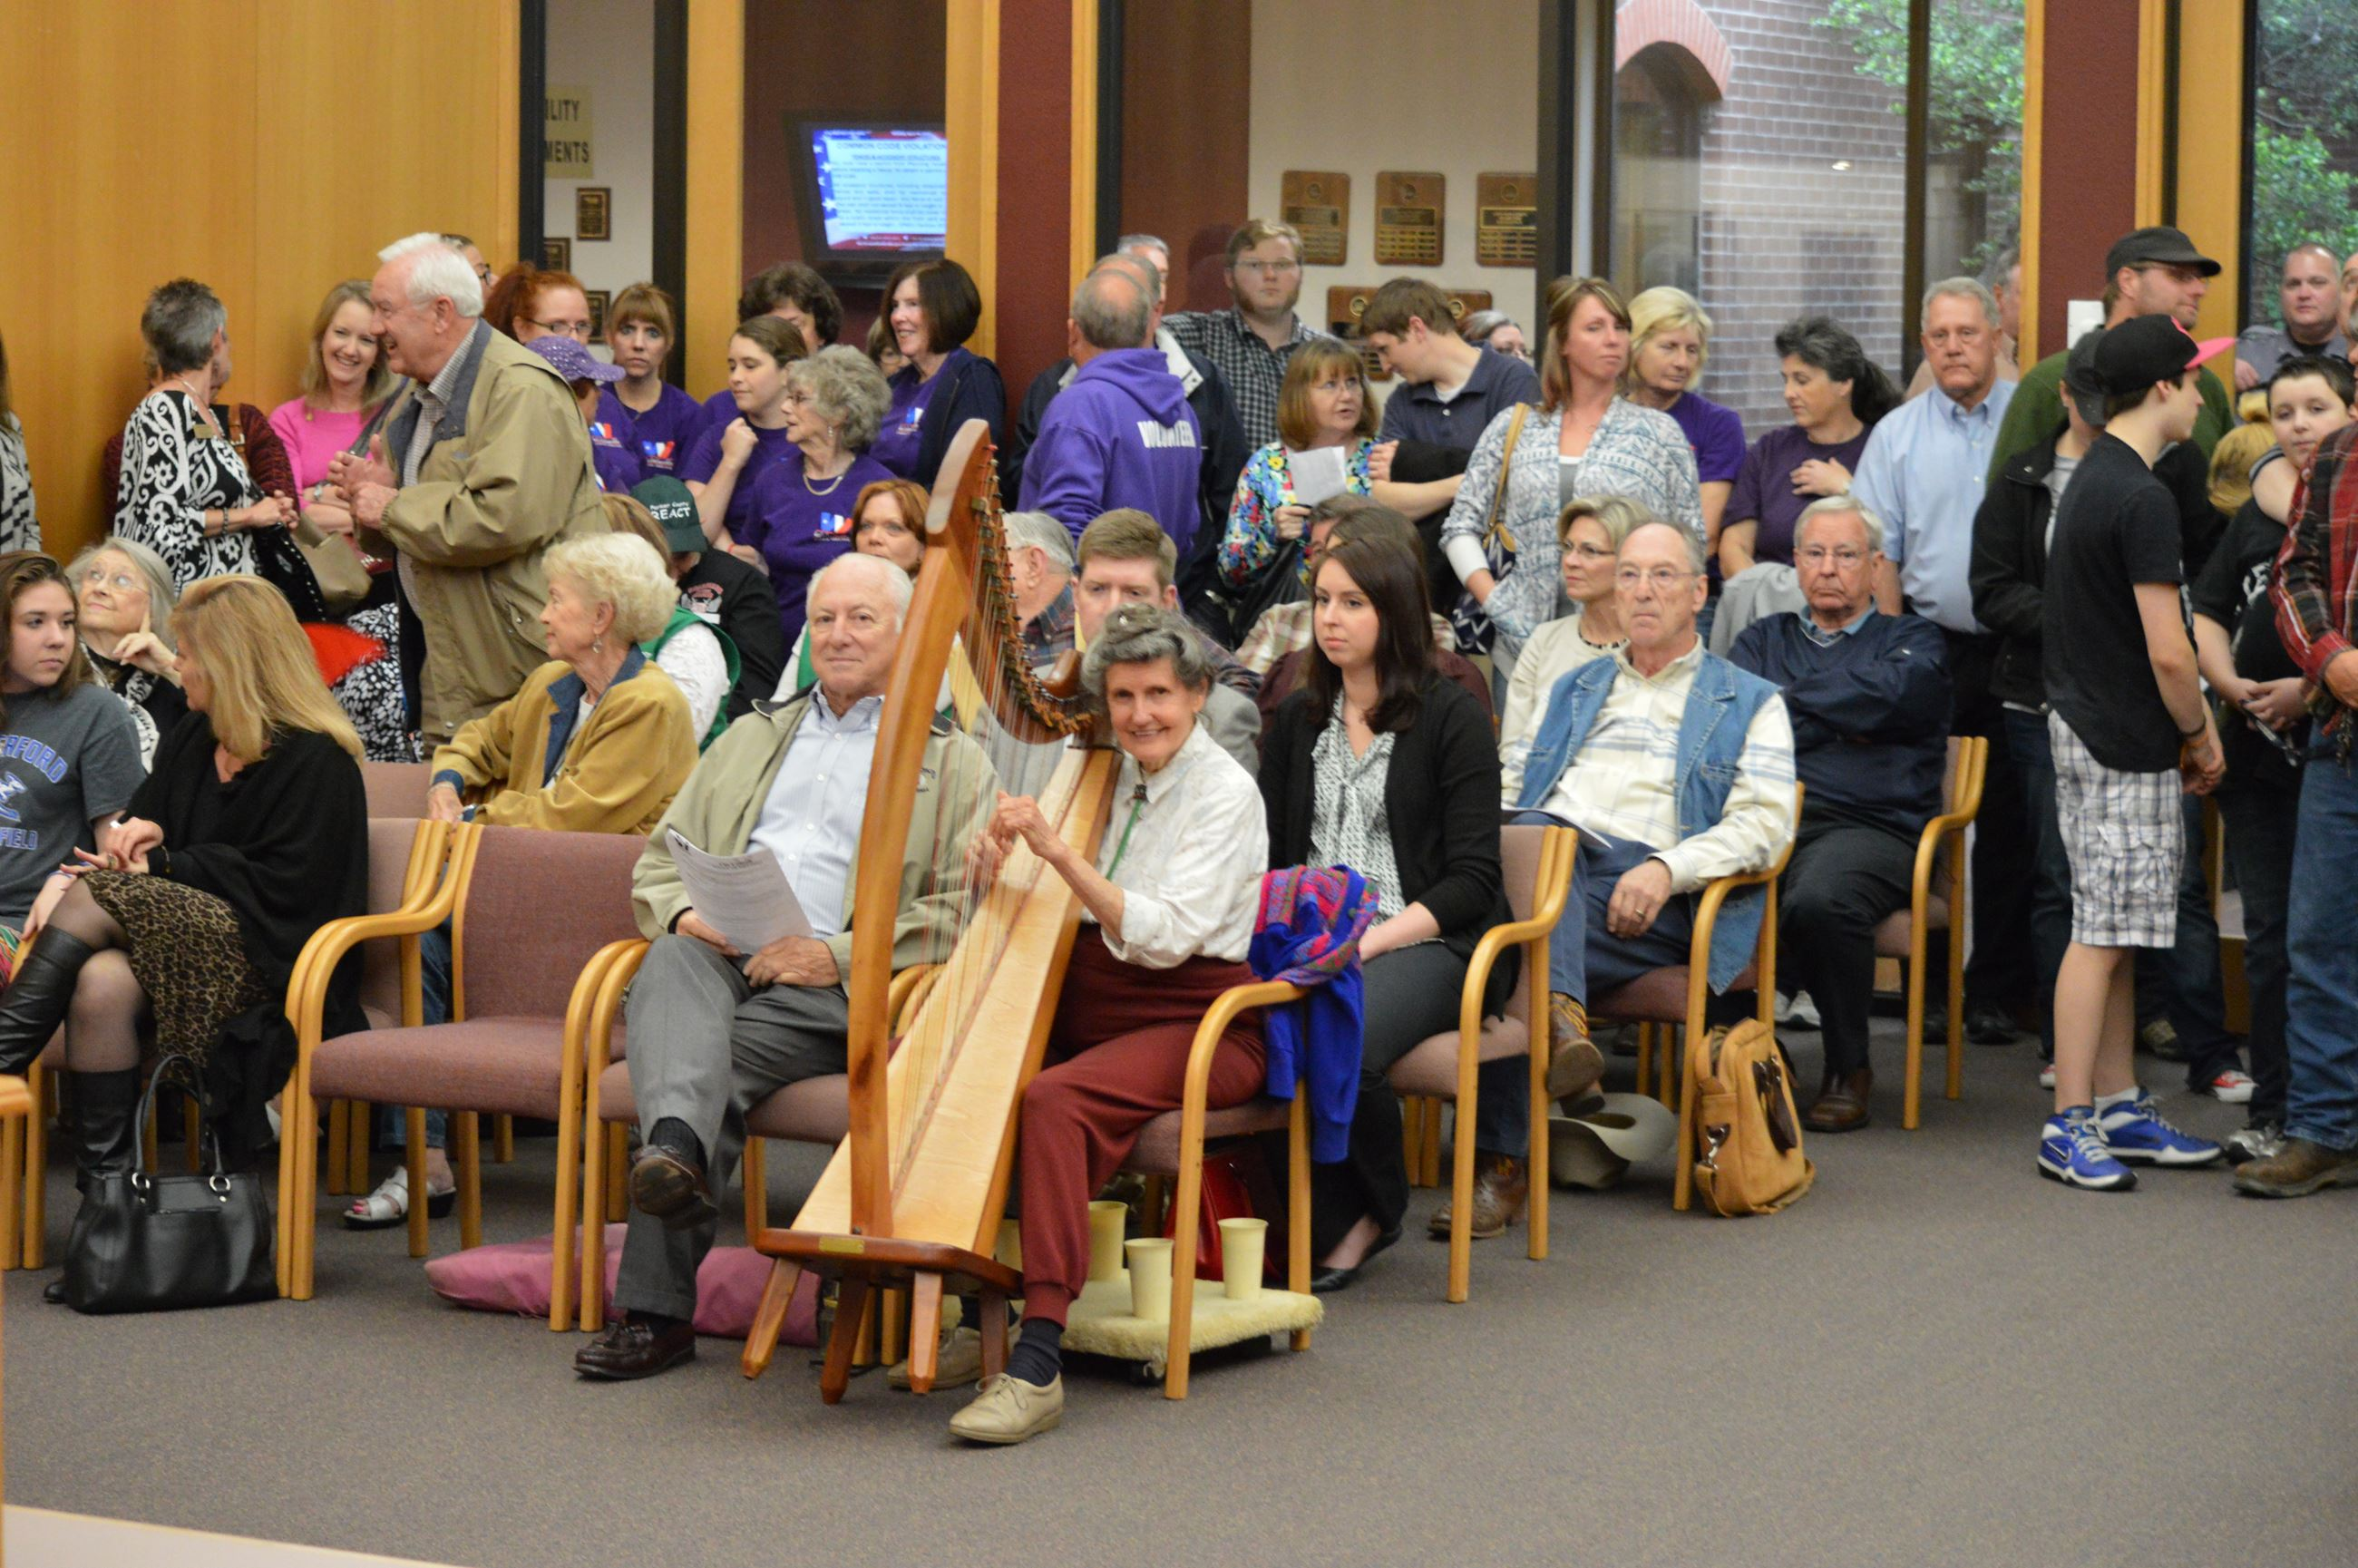 People at City Council Meeting